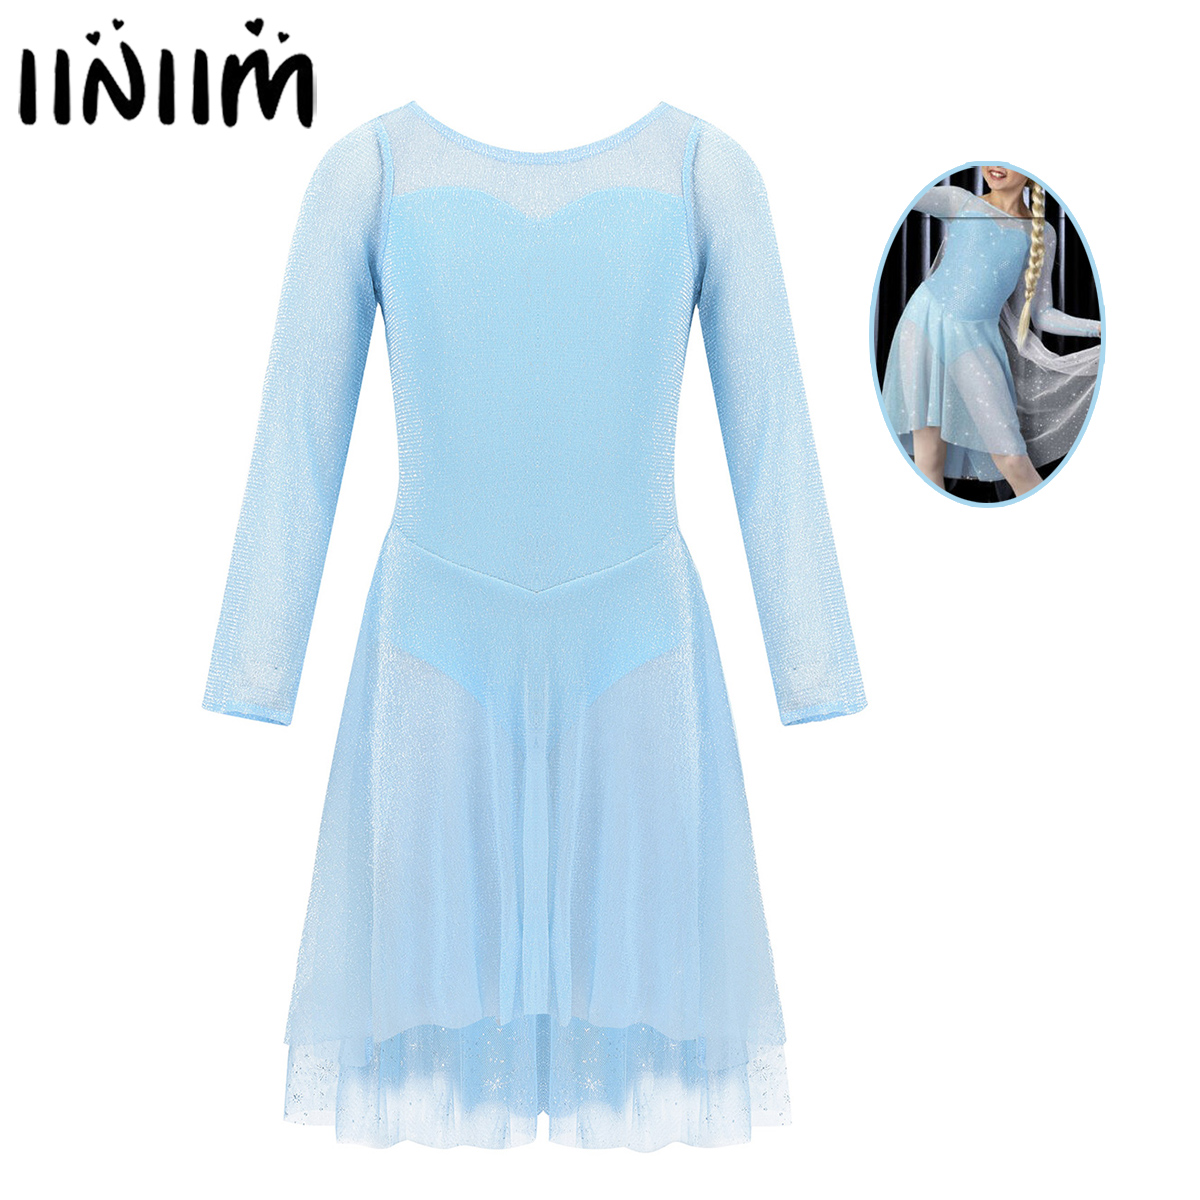 Iiniim Kids Girls Ballet Lyrical Dance Costume Sweetheart Tulle Gym Leotard Dress Attached Sparkly Snowflake Cape Dancewear